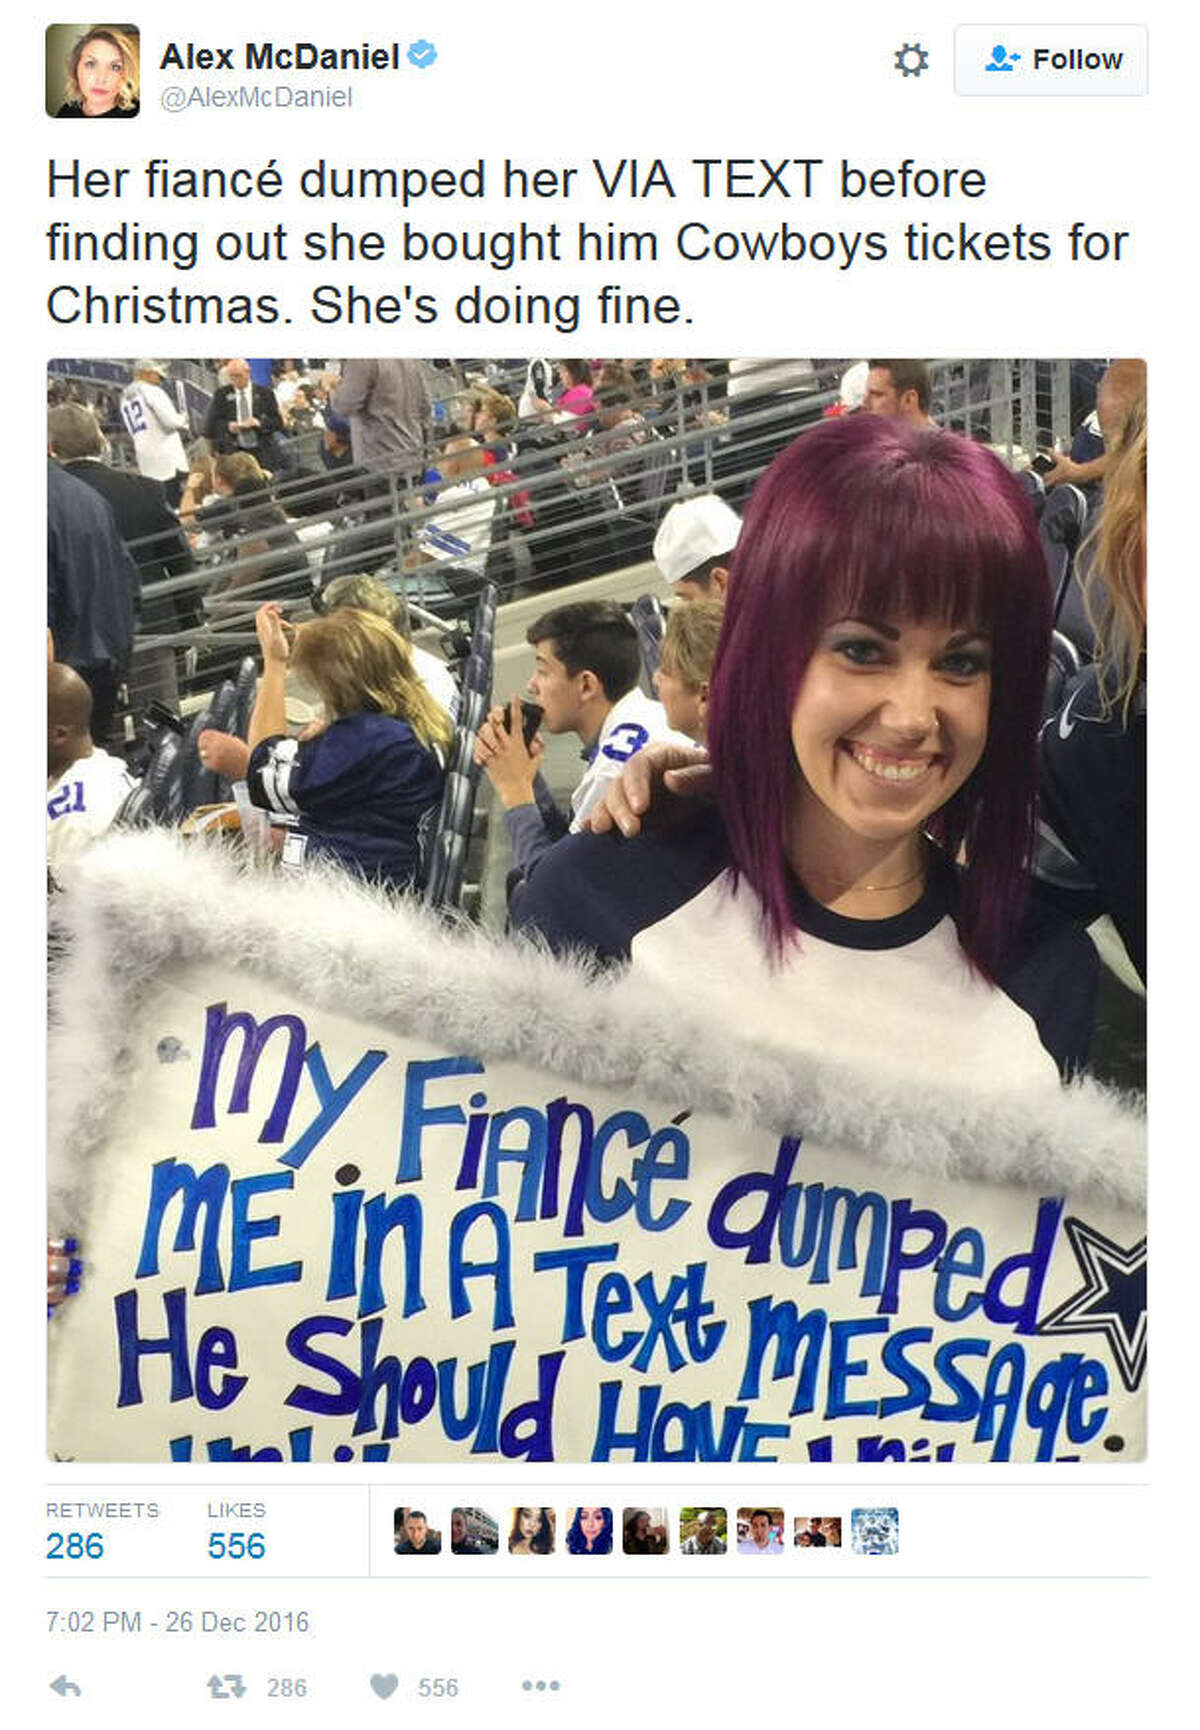 PHOTOS: NFL Week 16 memes collected A Dallas Cowboys fan got the last laugh after a holiday breakup. Click through to see the memes that got us through Week 16 of the NFL season...